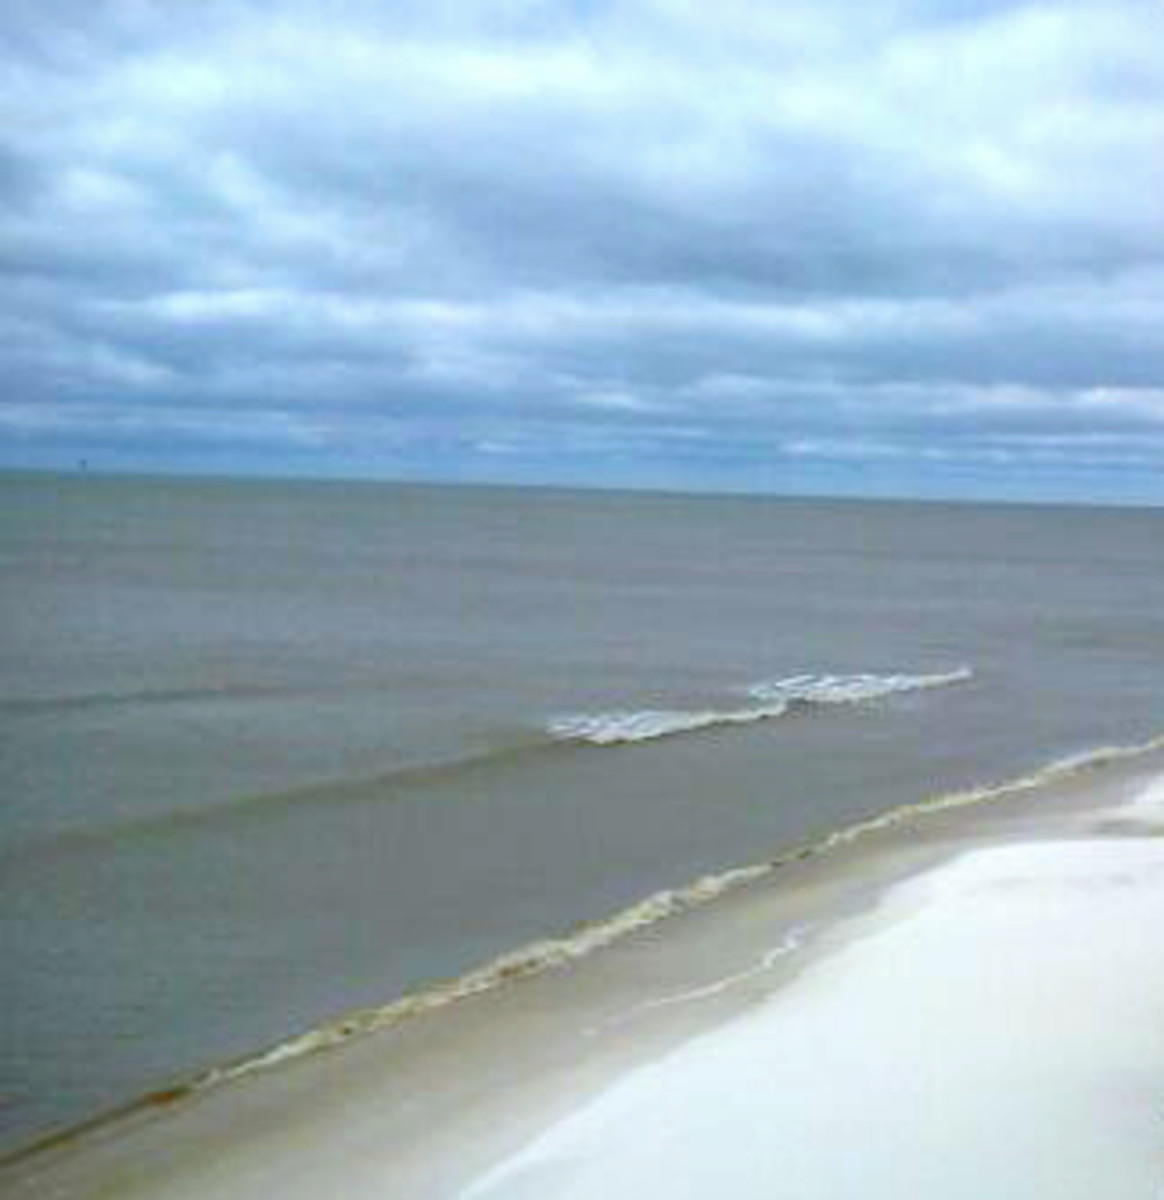 Dauphin Island on a cloudy day